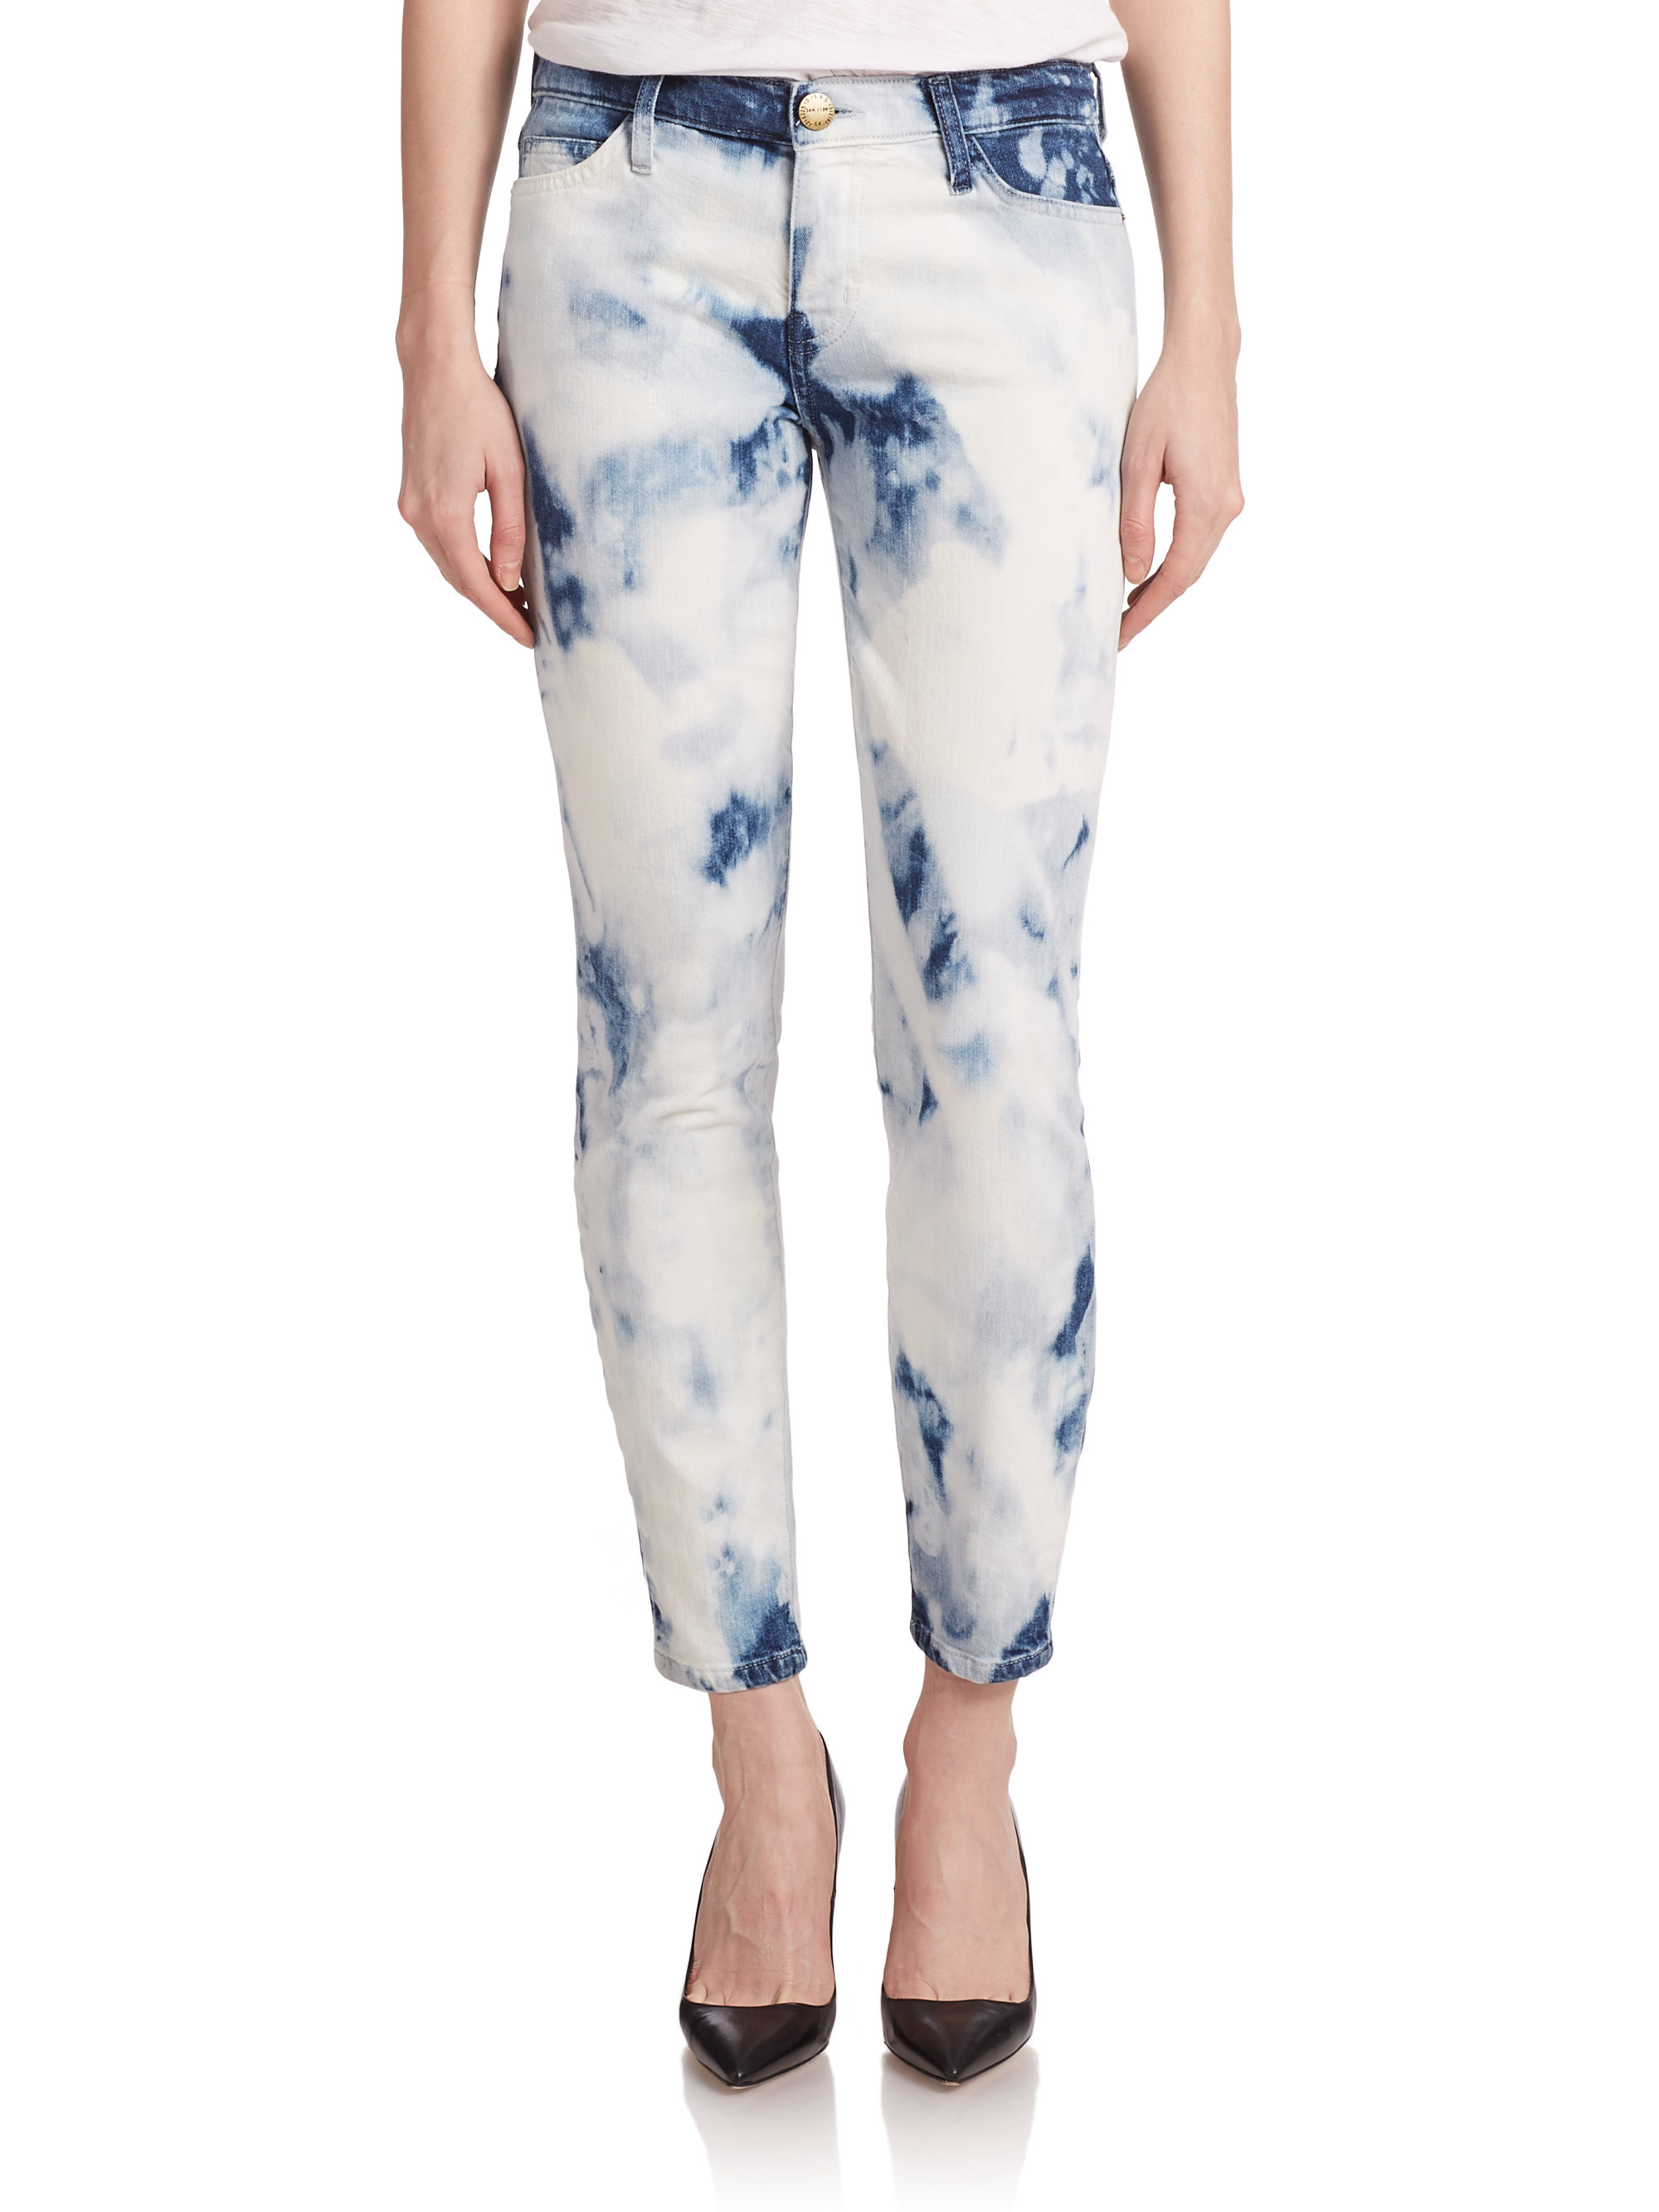 You searched for: tie dye jeans! Etsy is the home to thousands of handmade, vintage, and one-of-a-kind products and gifts related to your search. No matter what you're looking for or where you are in the world, our global marketplace of sellers can help you find unique and affordable options.